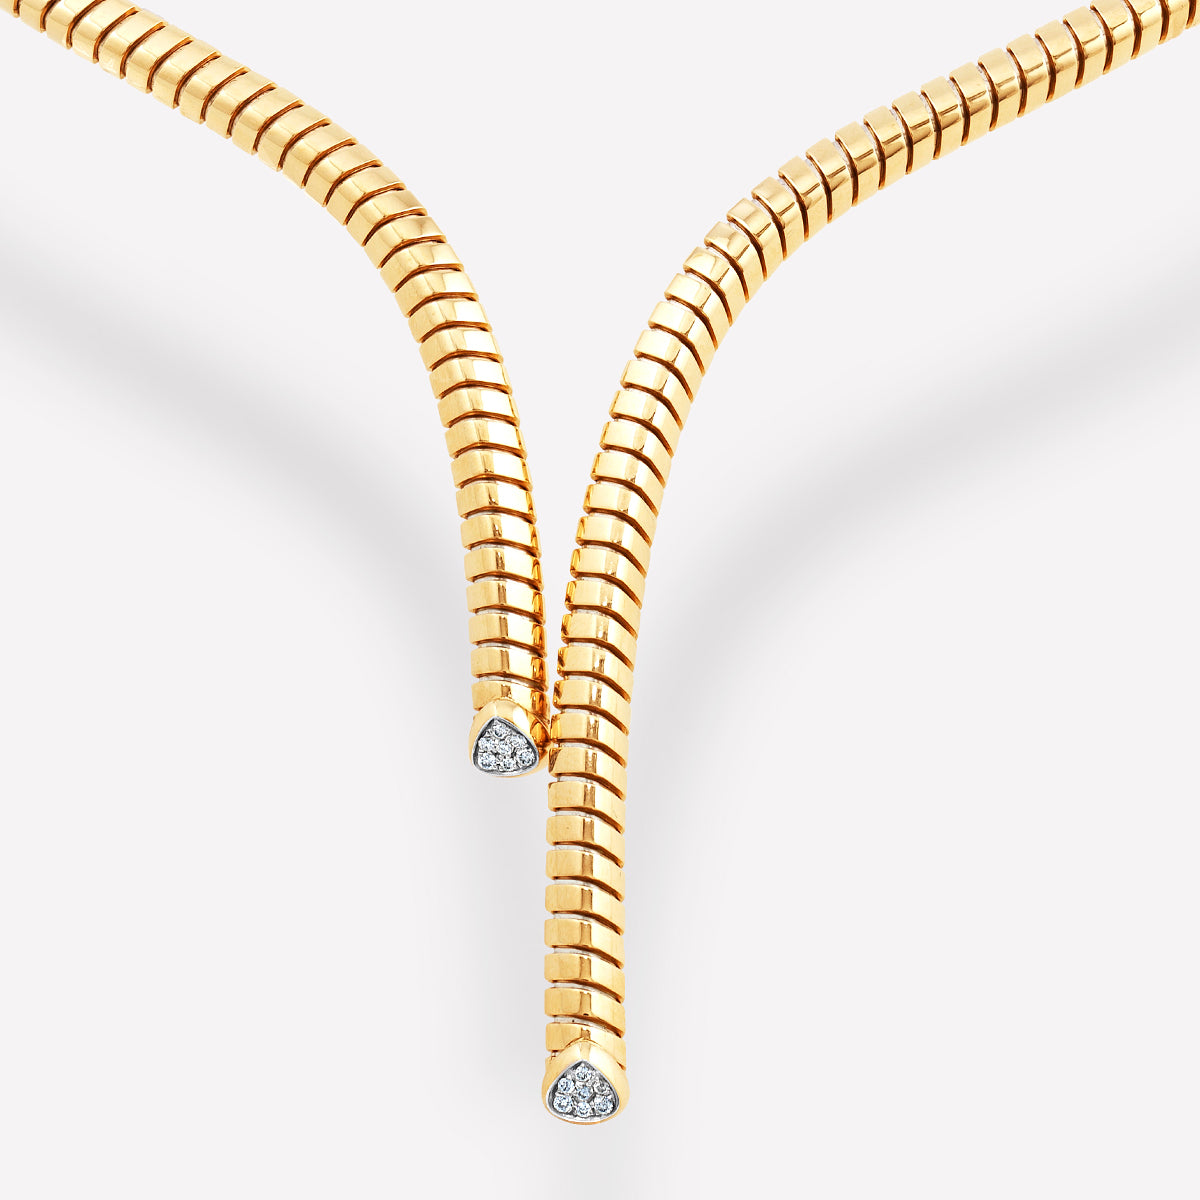 marinab.com, Trisolina Pavé Diamond Necklace